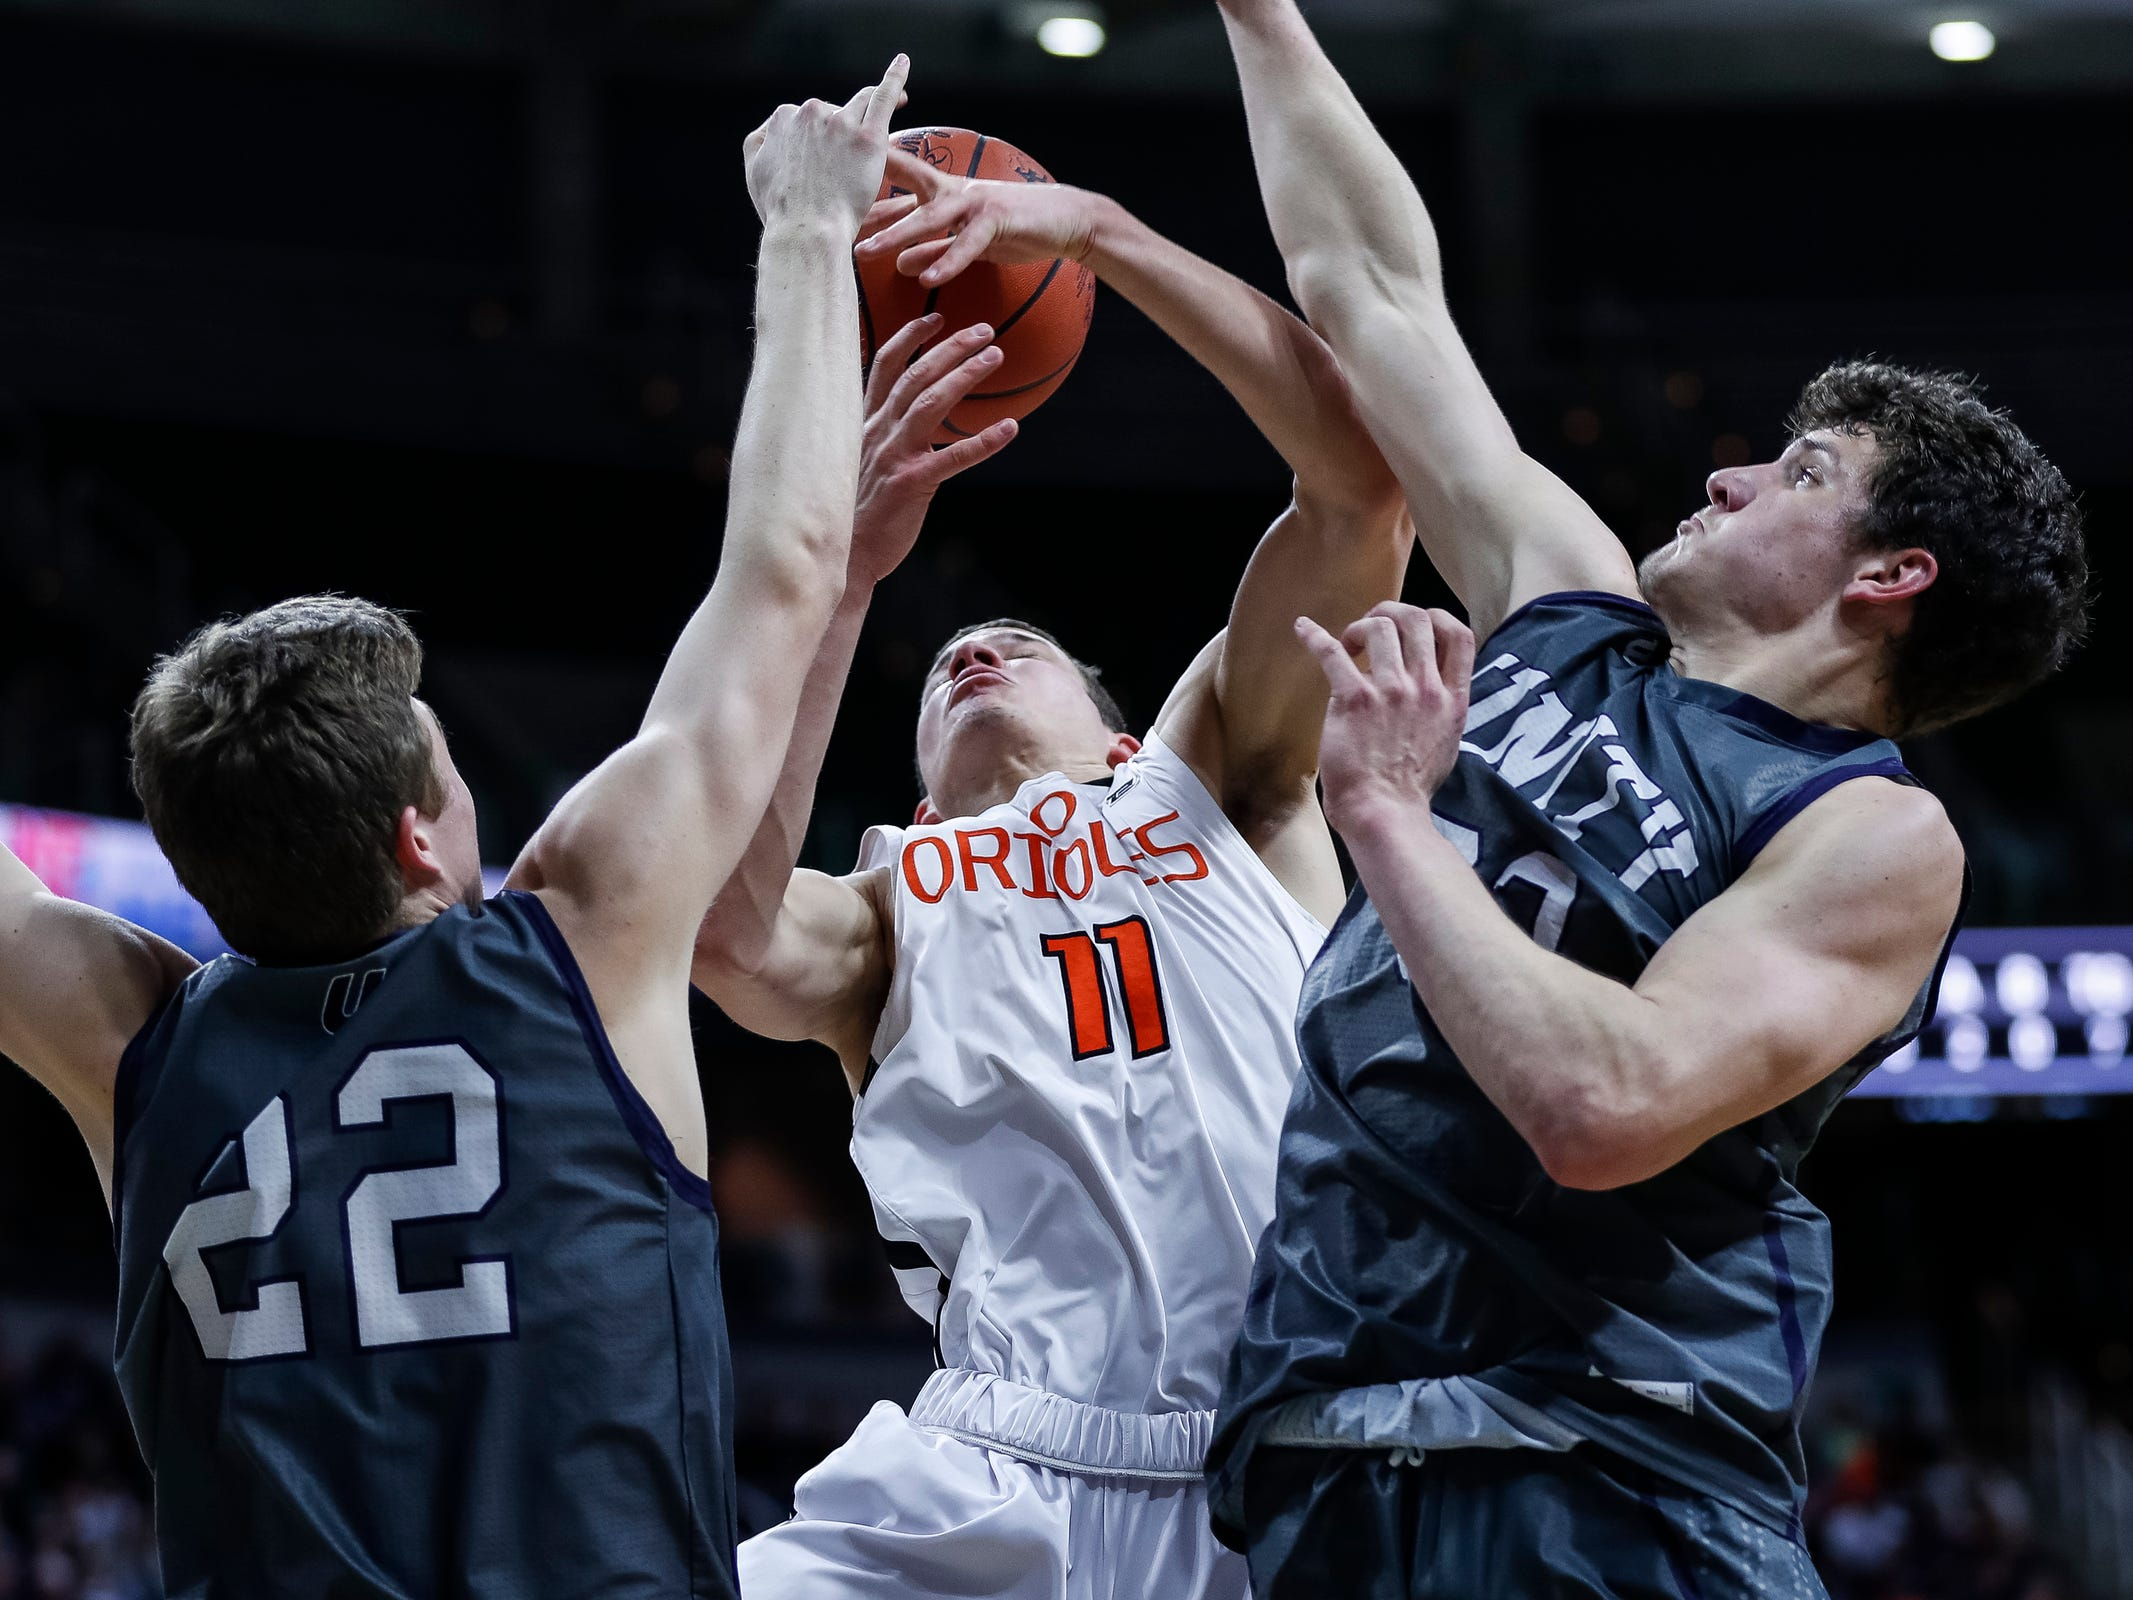 Ludington's Joshua Laman (11) battles for a rebound with Hudsonville Unity Christian's Derek Slager (22) and T.J. VanKoevering (32) during the first half of MHSAA Division 2 semifinal at the Breslin Center in East Lansing, Friday, March 15, 2019.